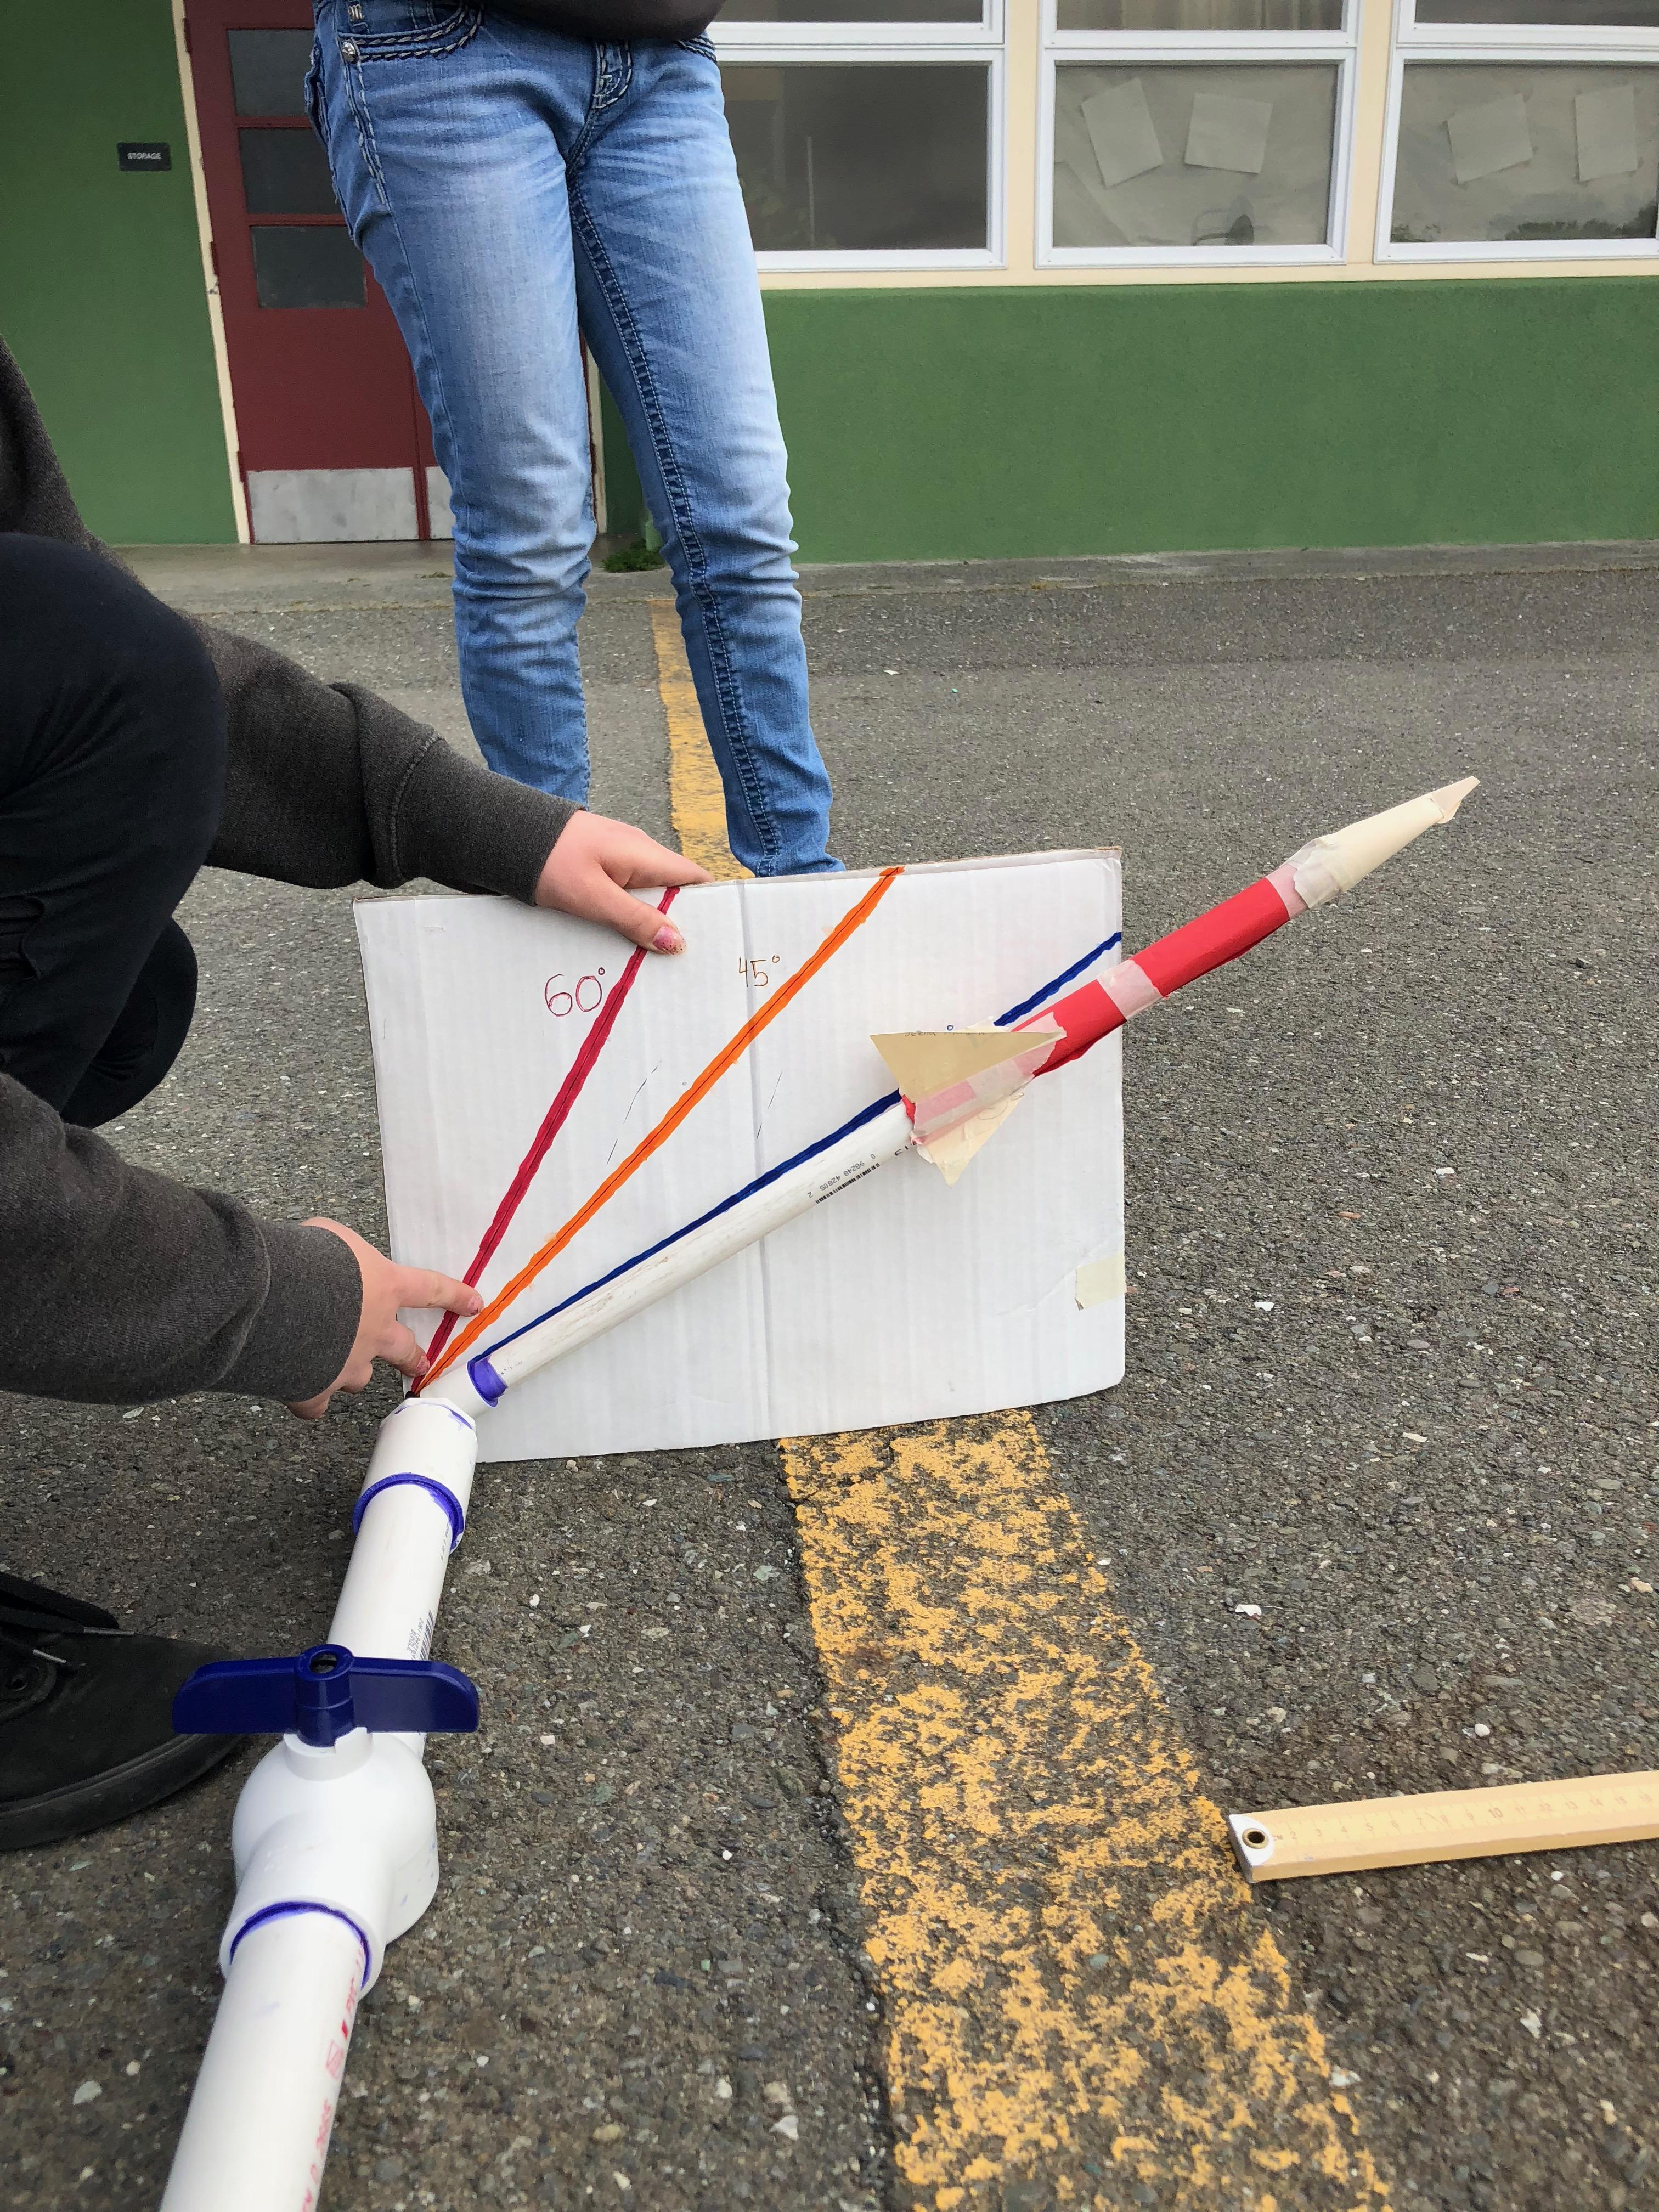 Launching paper rockets